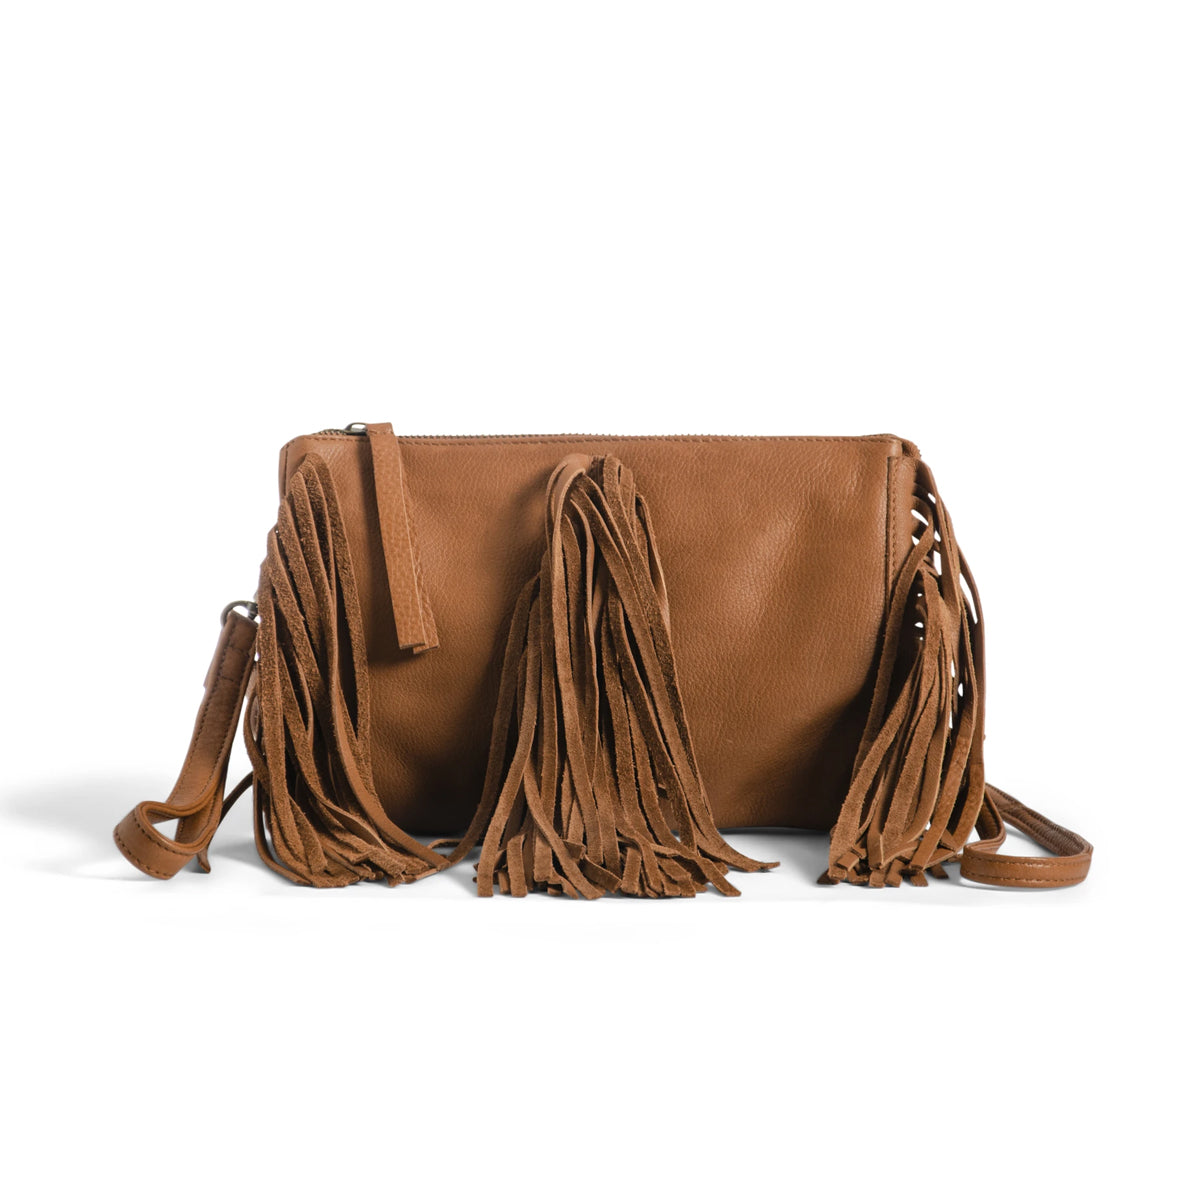 Day & Mood Gerri Crossbody Fringed Purse - Cognac